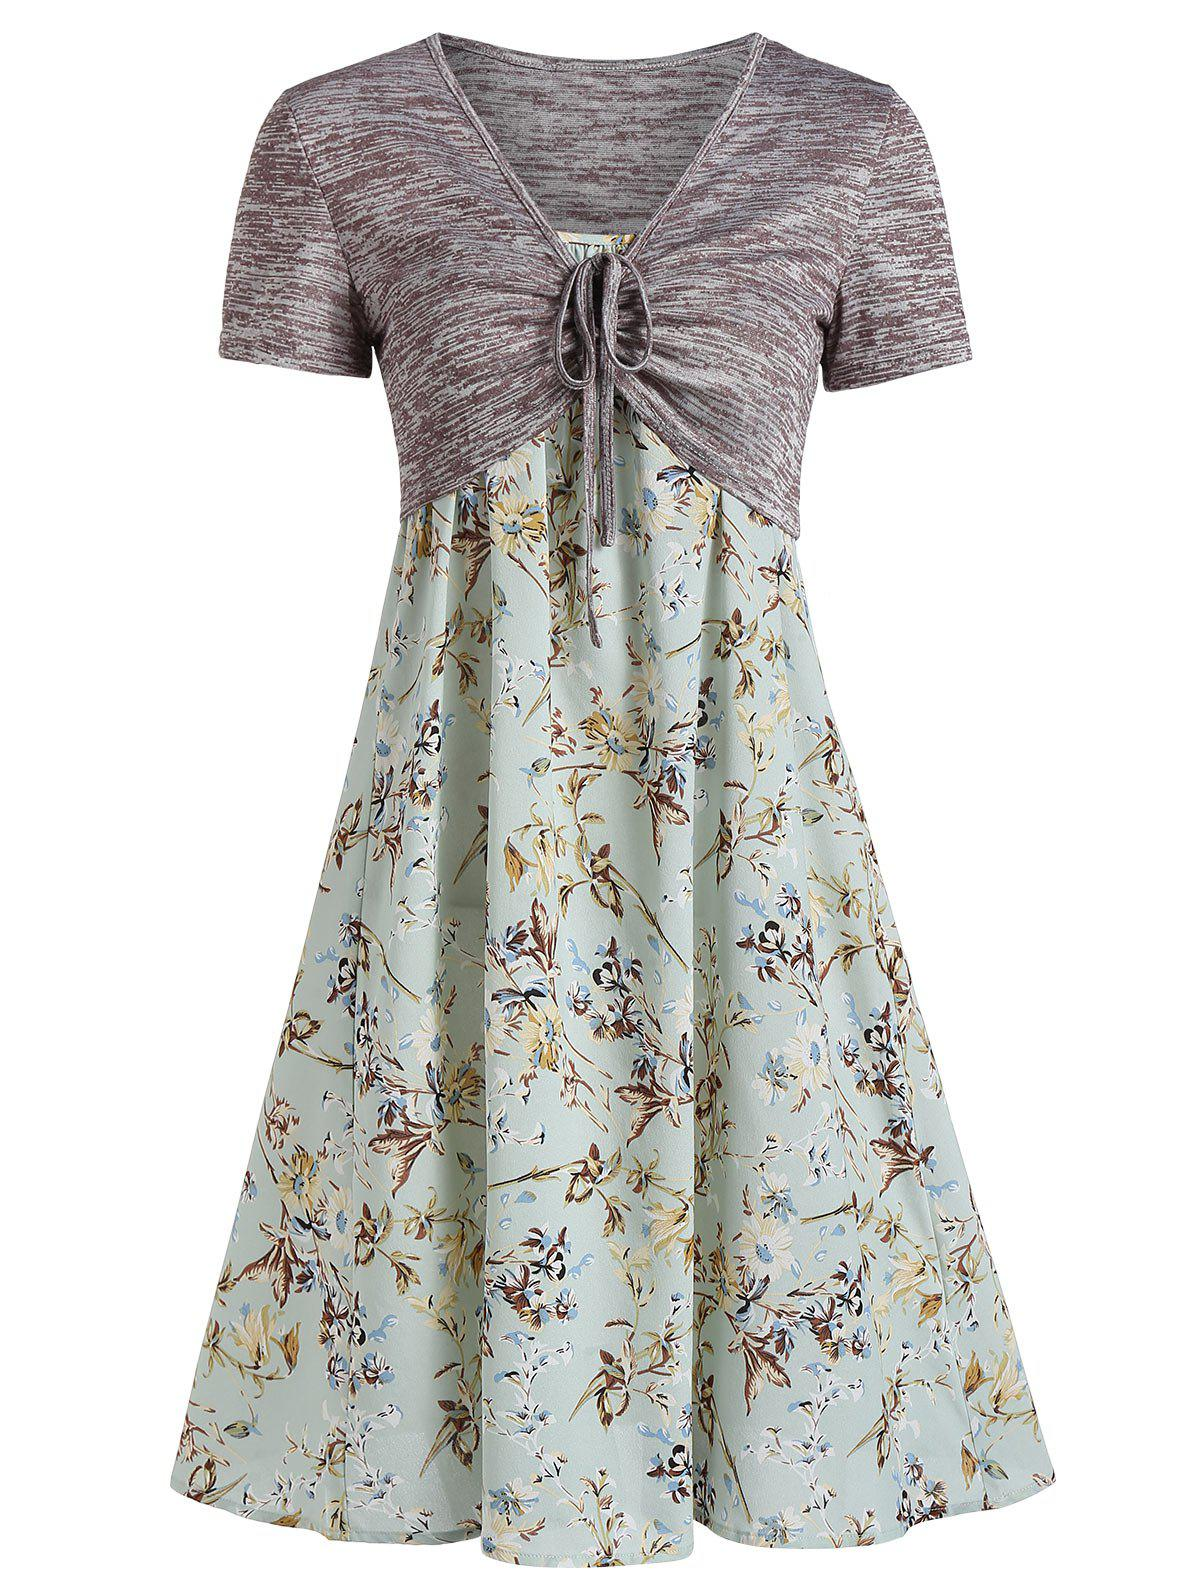 Trendy Floral Print Spaghetti Strap Dress and Cinched Top